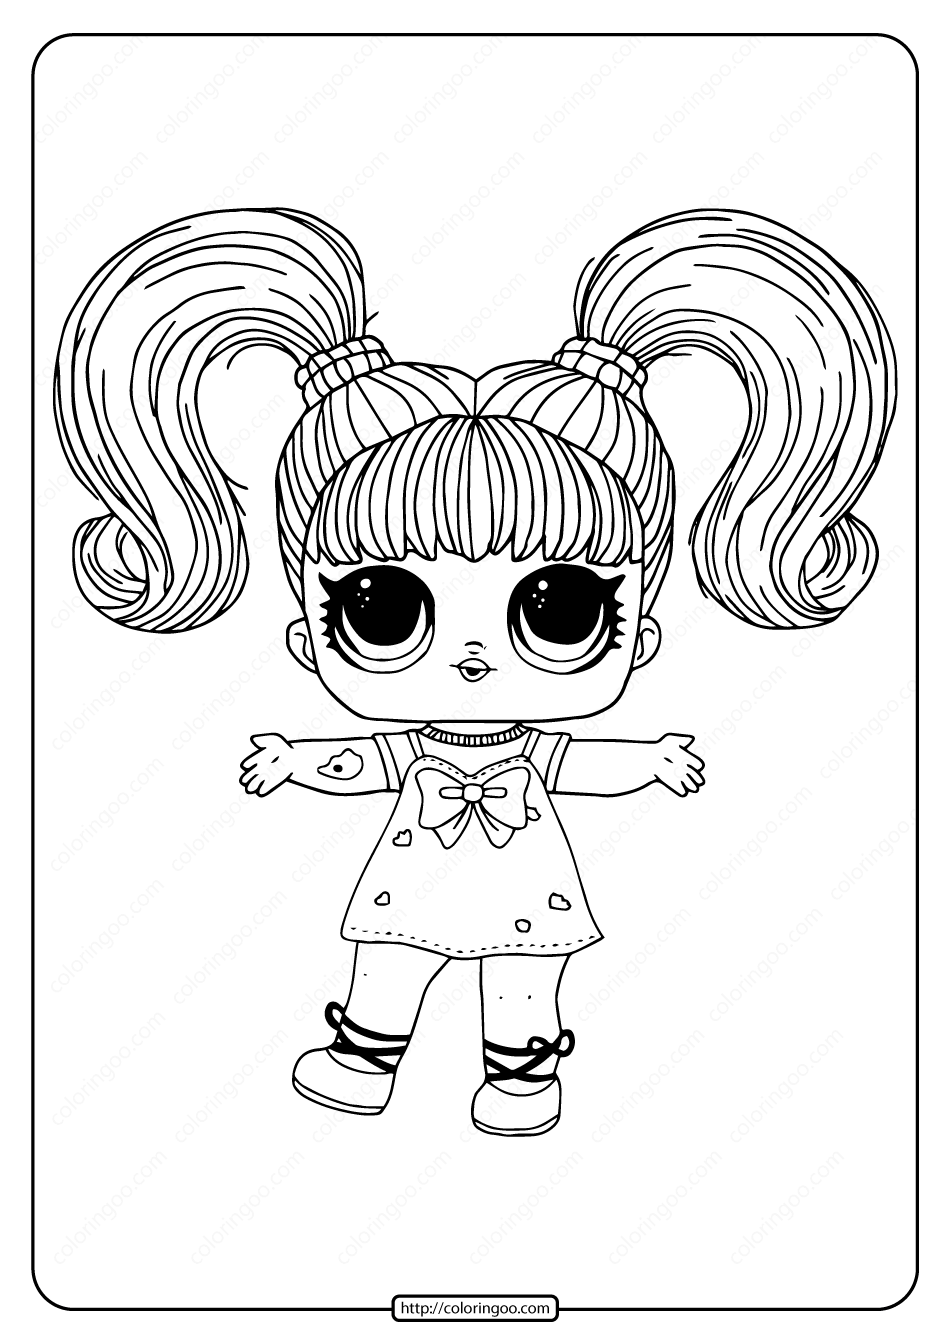 Lol Surprise Hairgoals Yang Q T Coloring Page High Quality Free Printable Coloring Dra Princess Coloring Pages Cartoon Coloring Pages Unicorn Coloring Pages